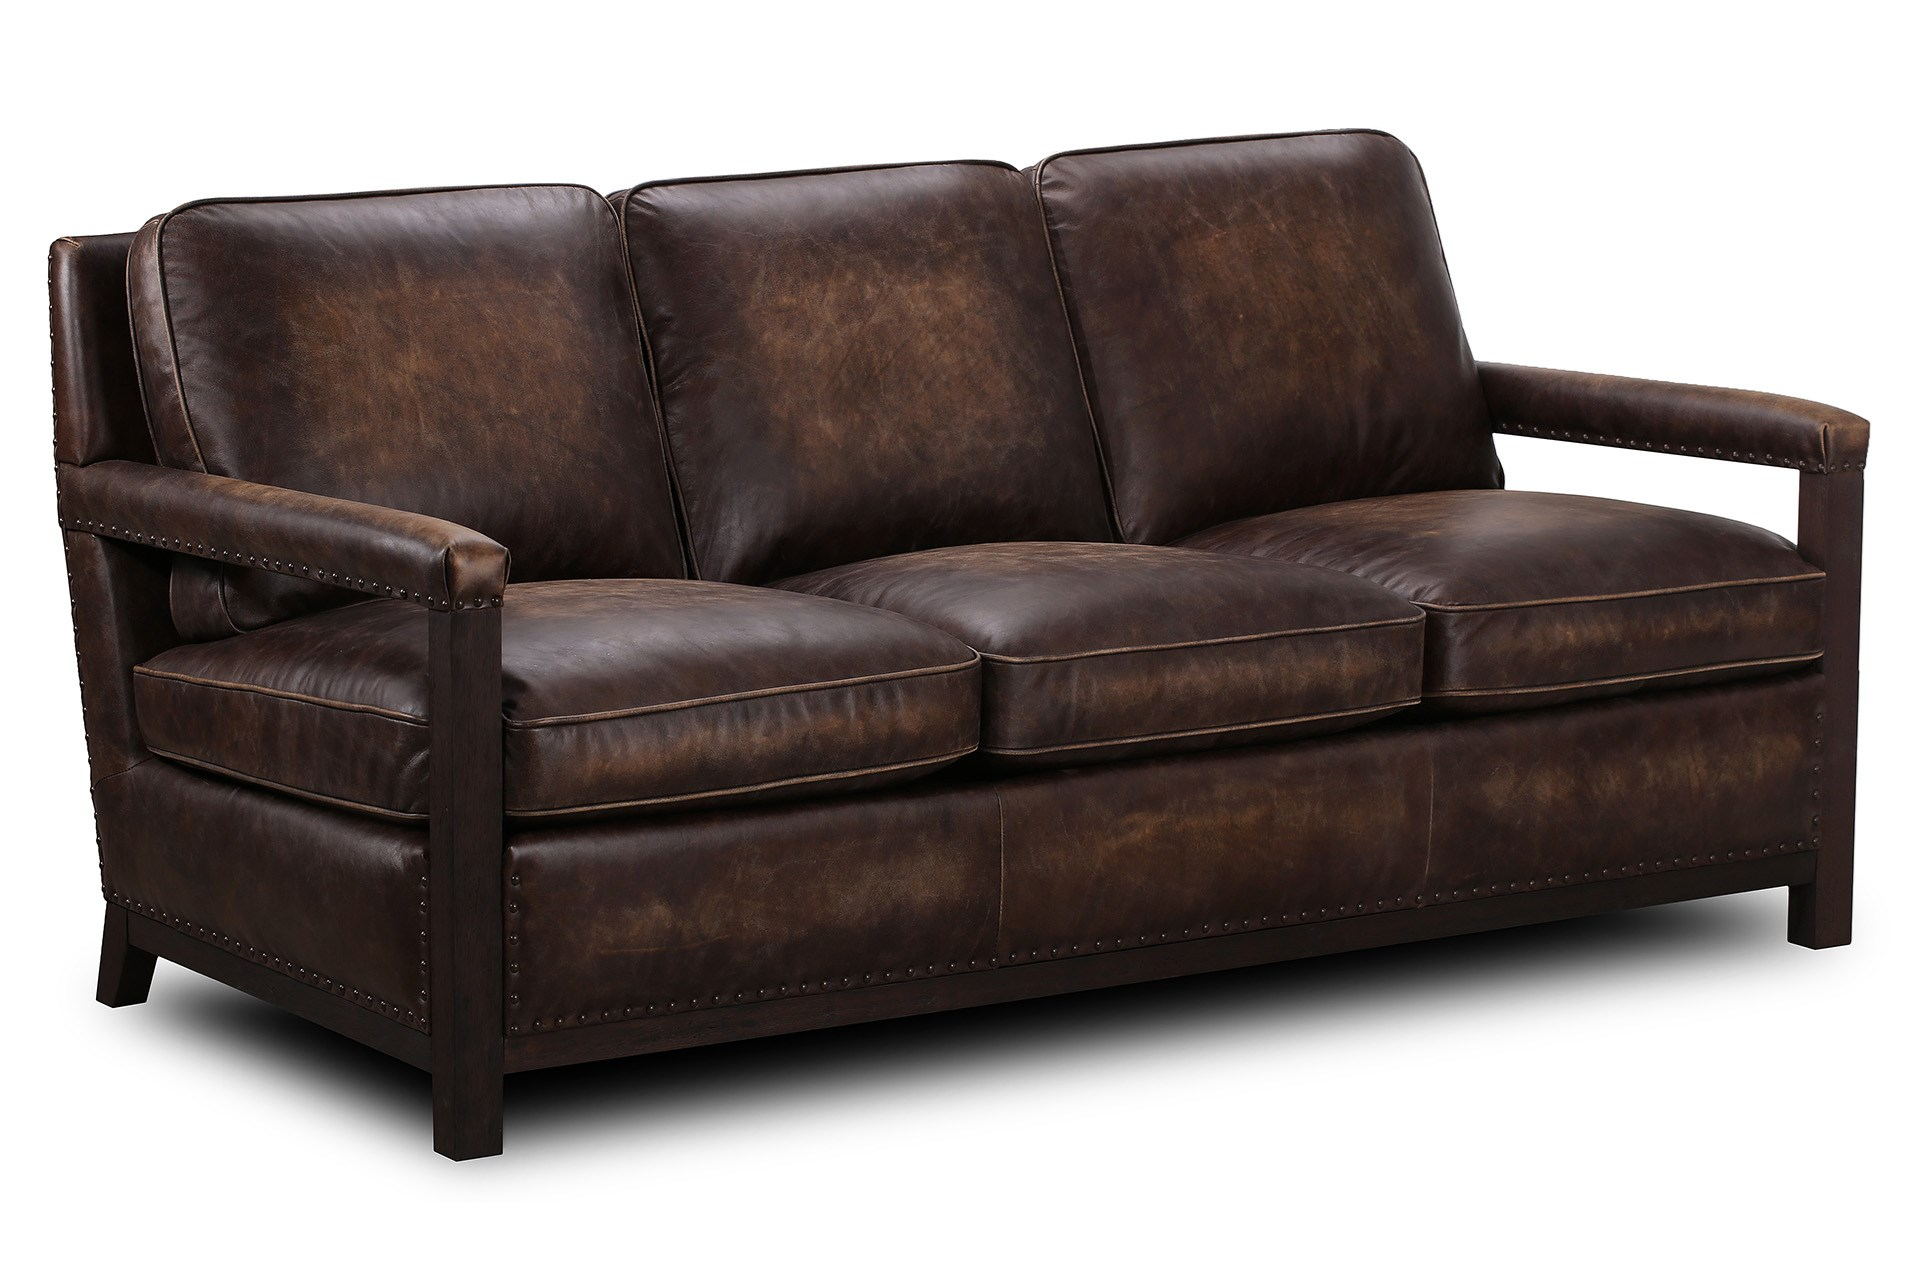 Chocolate brown top grain leather sofa qty 1 has been successfully added to your cart